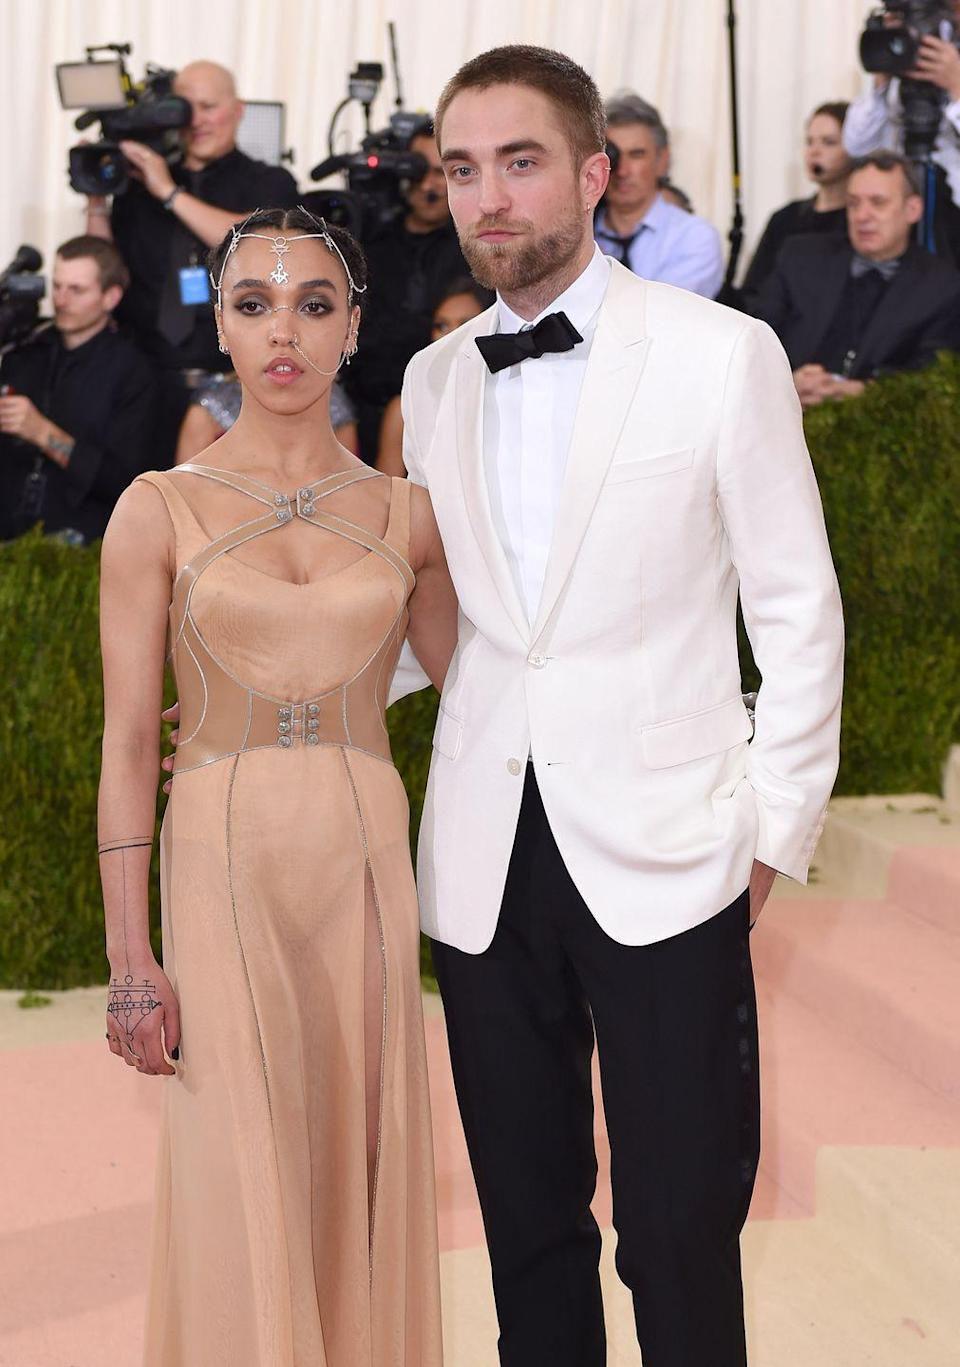 "<p>This couple's two-year relationship was initiated via a special <a href=""https://www.eonline.com/de/news/592353/robert-pattinson-and-fka-twigs-were-set-up-by-sienna-miller-and-tom-sturridge"" rel=""nofollow noopener"" target=""_blank"" data-ylk=""slk:introduction"" class=""link rapid-noclick-resp"">introduction</a> by Sienna Miller and her then-beau Tom Sturridge. The three actors attended an FKA Twigs concert together, and Sturridge made sure to get Pattinson backstage access to meet the singer. </p>"